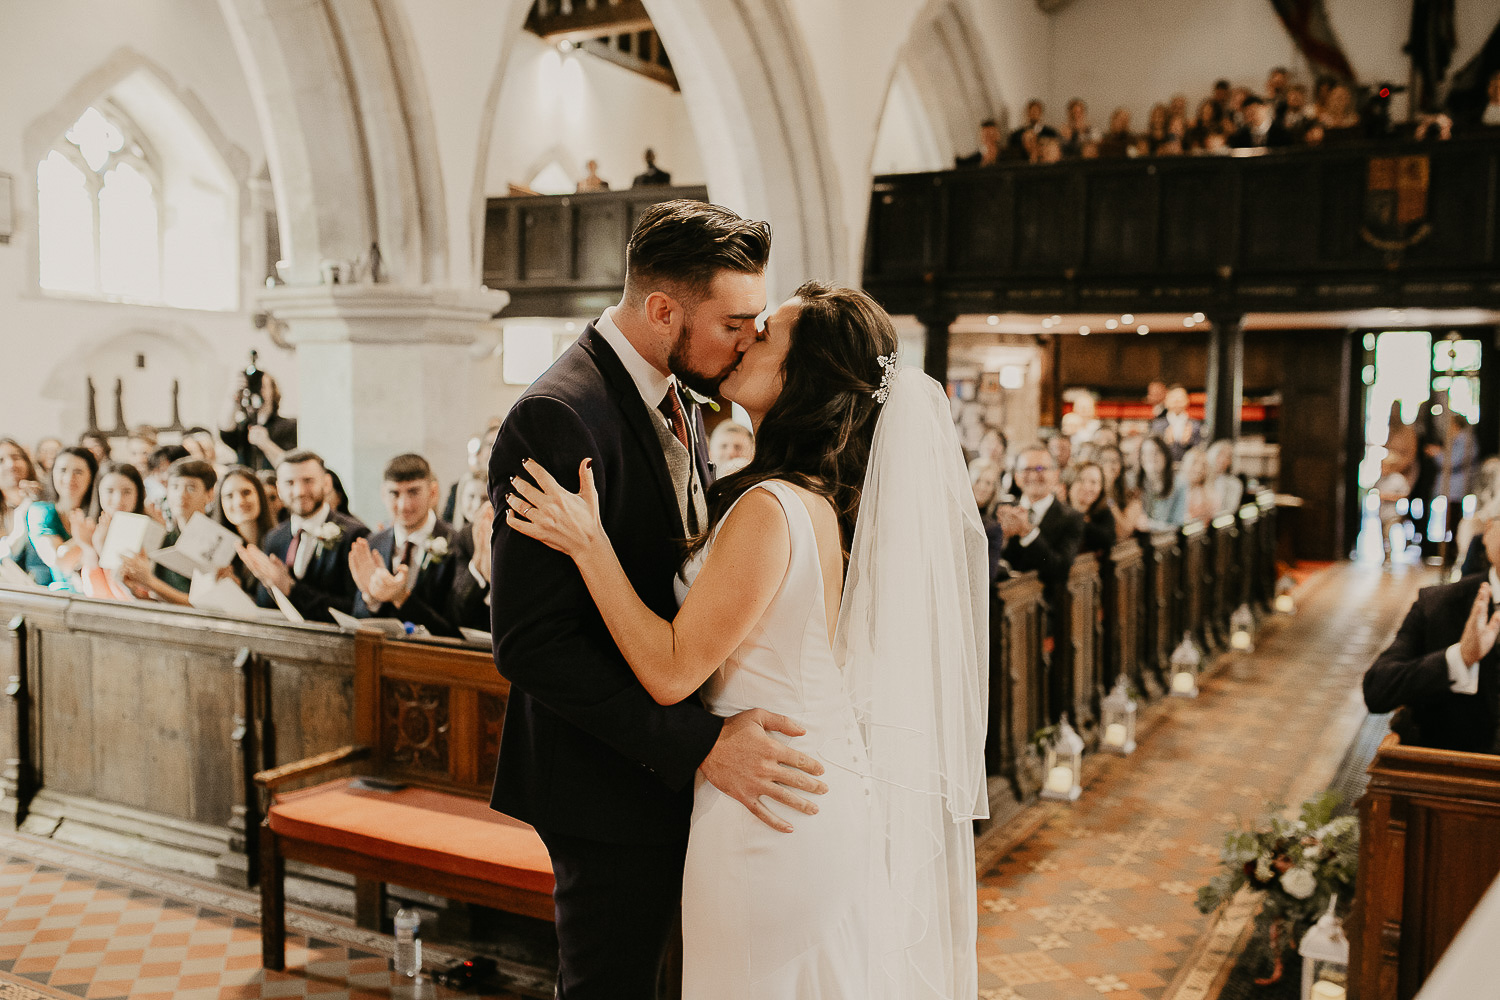 Couple getting married in Surrey UK